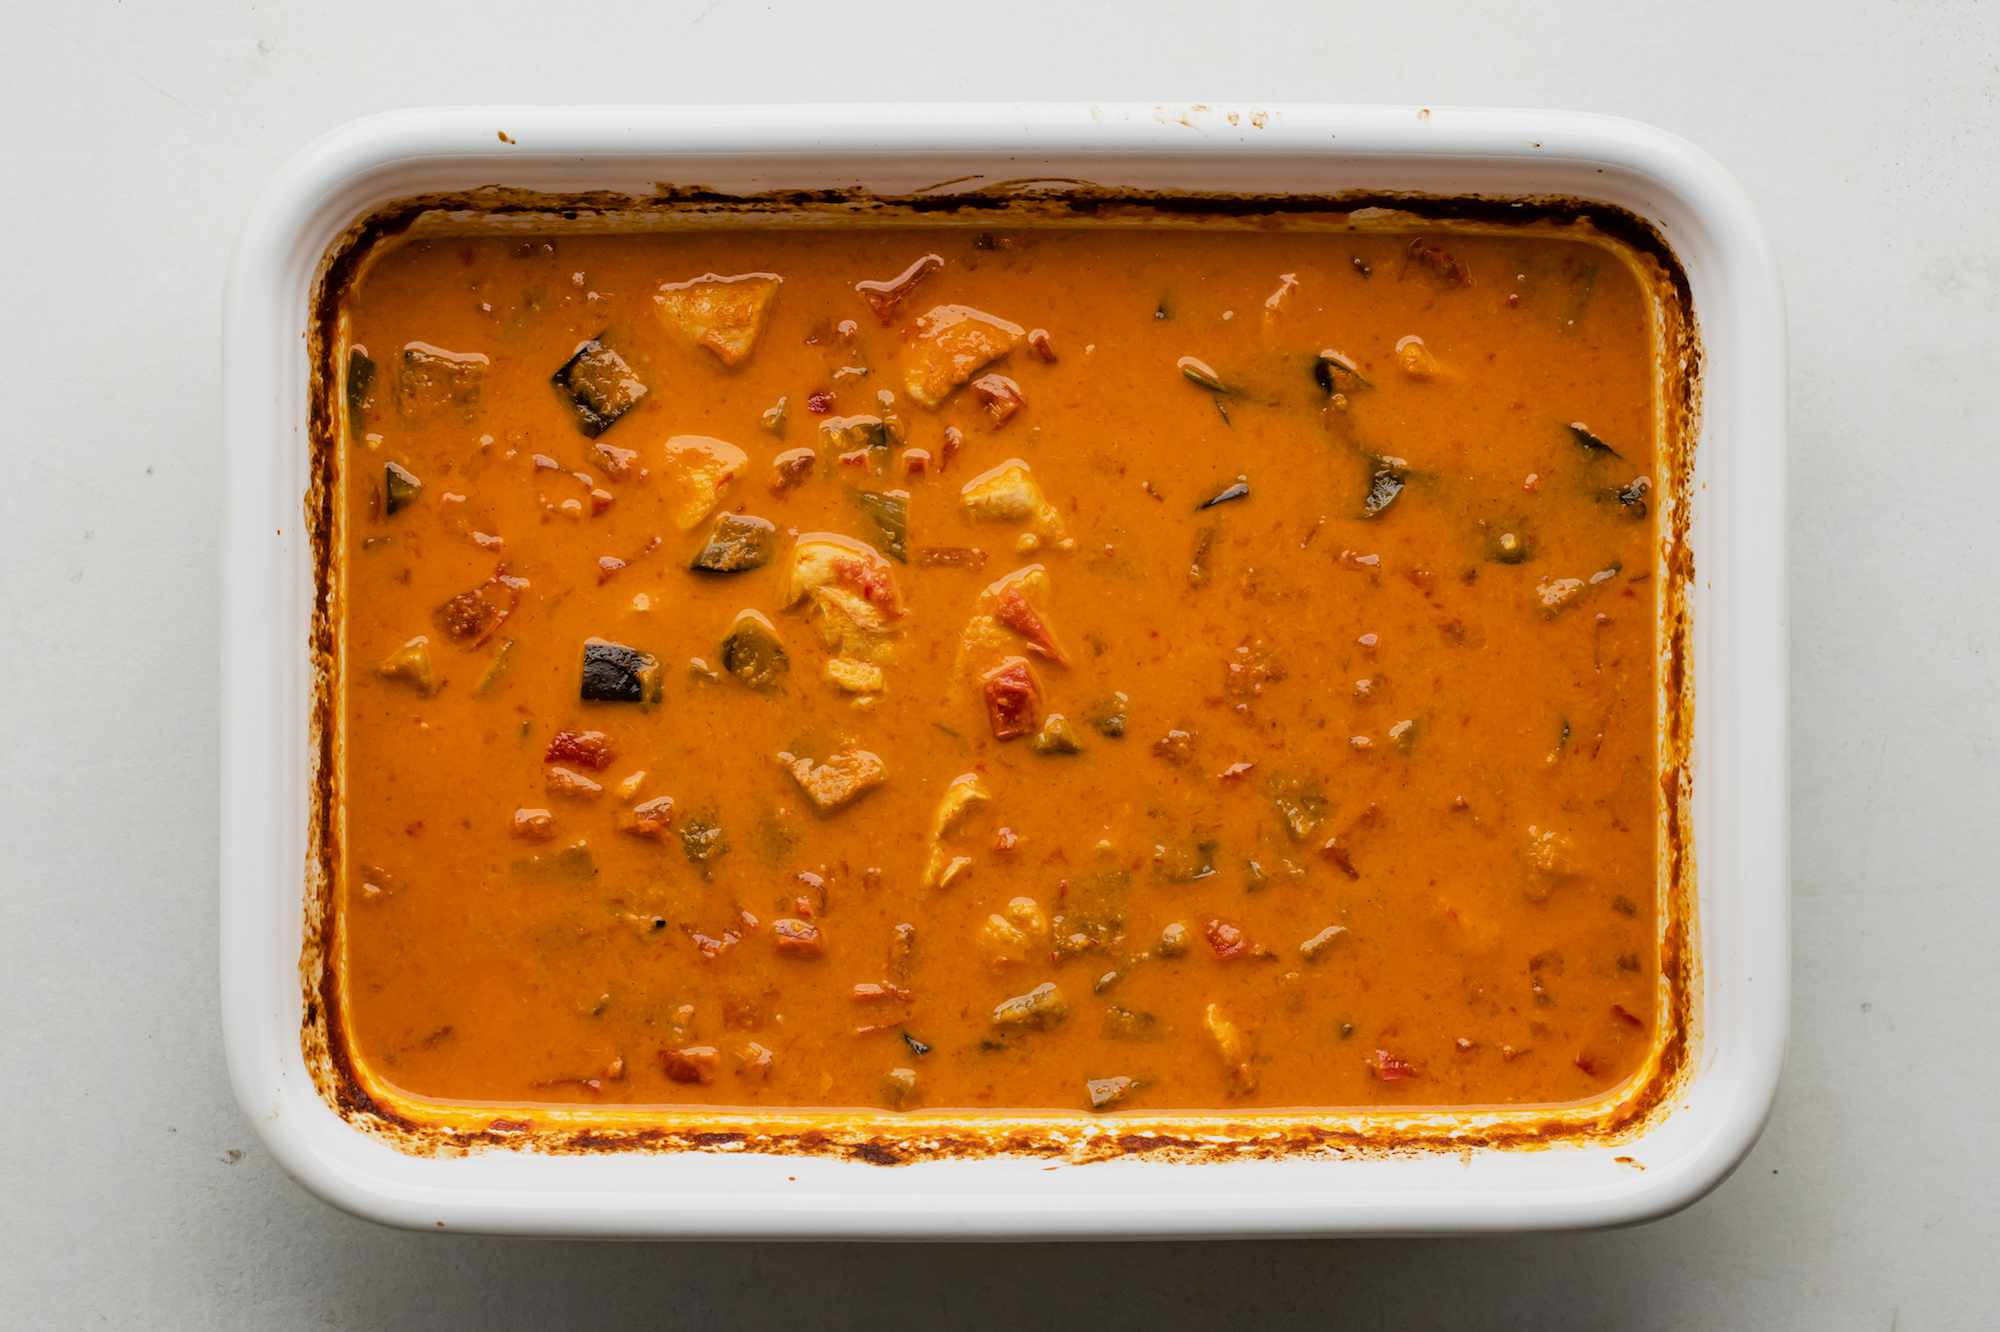 Return curry to oven